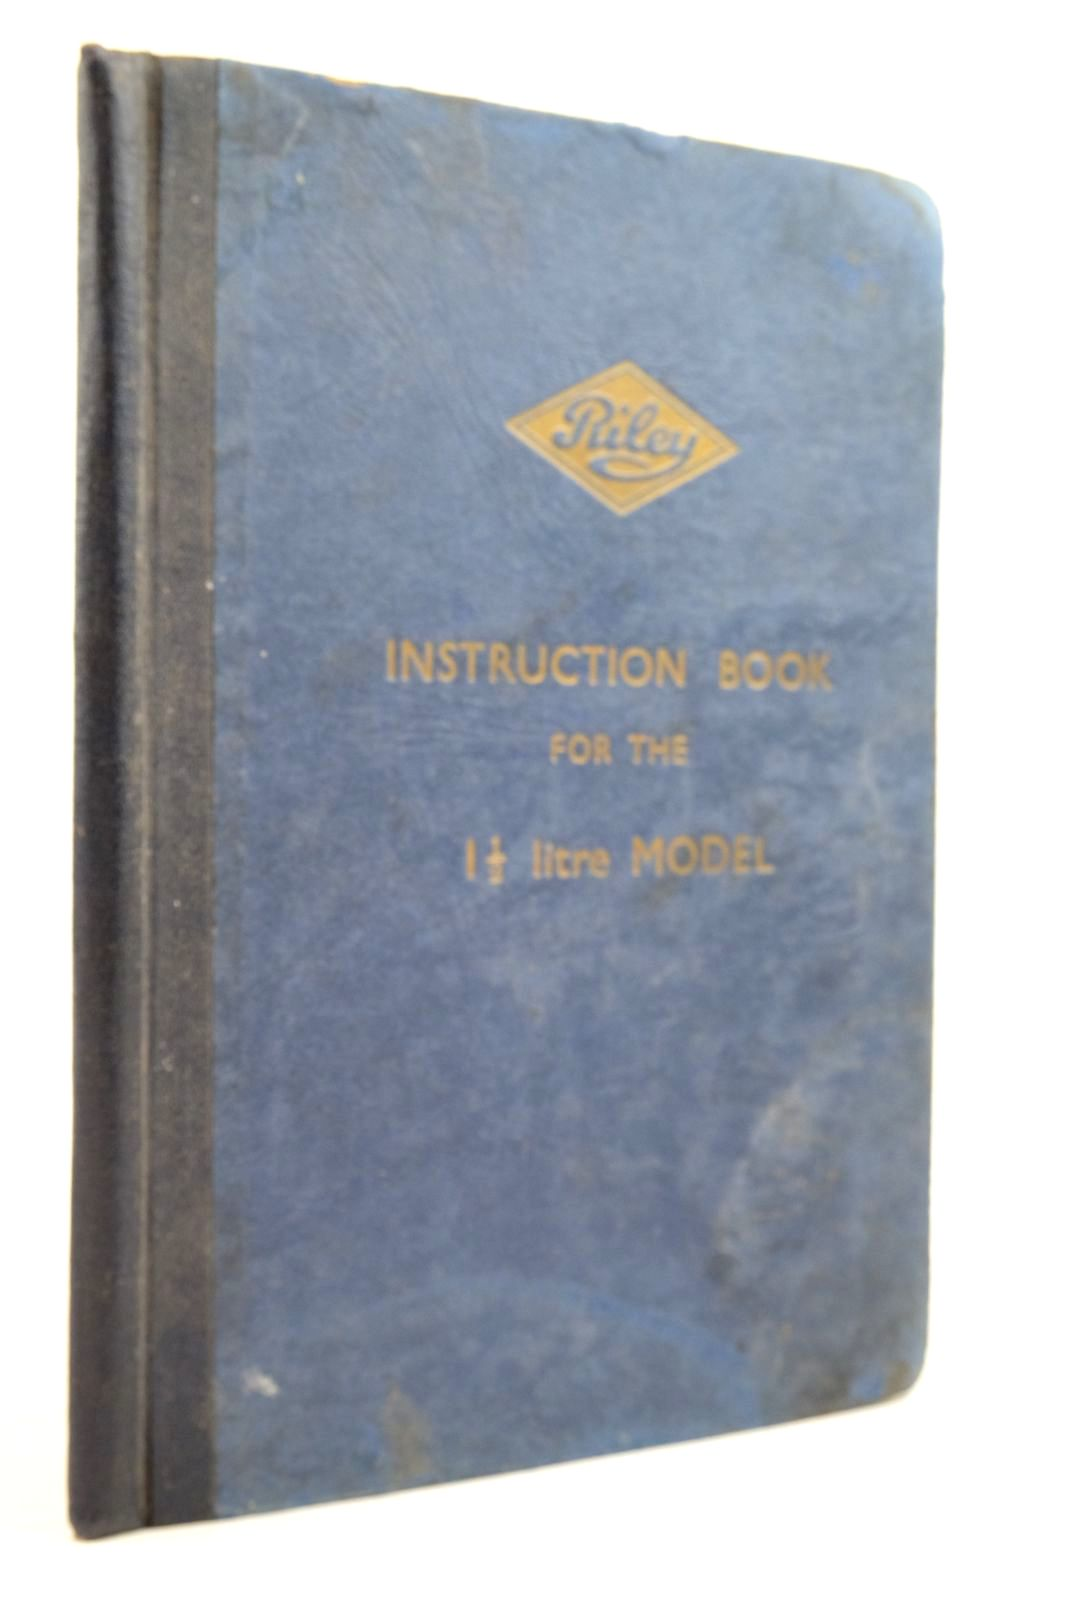 Photo of RILEY INSTRUCTION BOOK FOR THE 1 1/2 LITRE MODEL published by Riley Motors Limited (STOCK CODE: 2134622)  for sale by Stella & Rose's Books